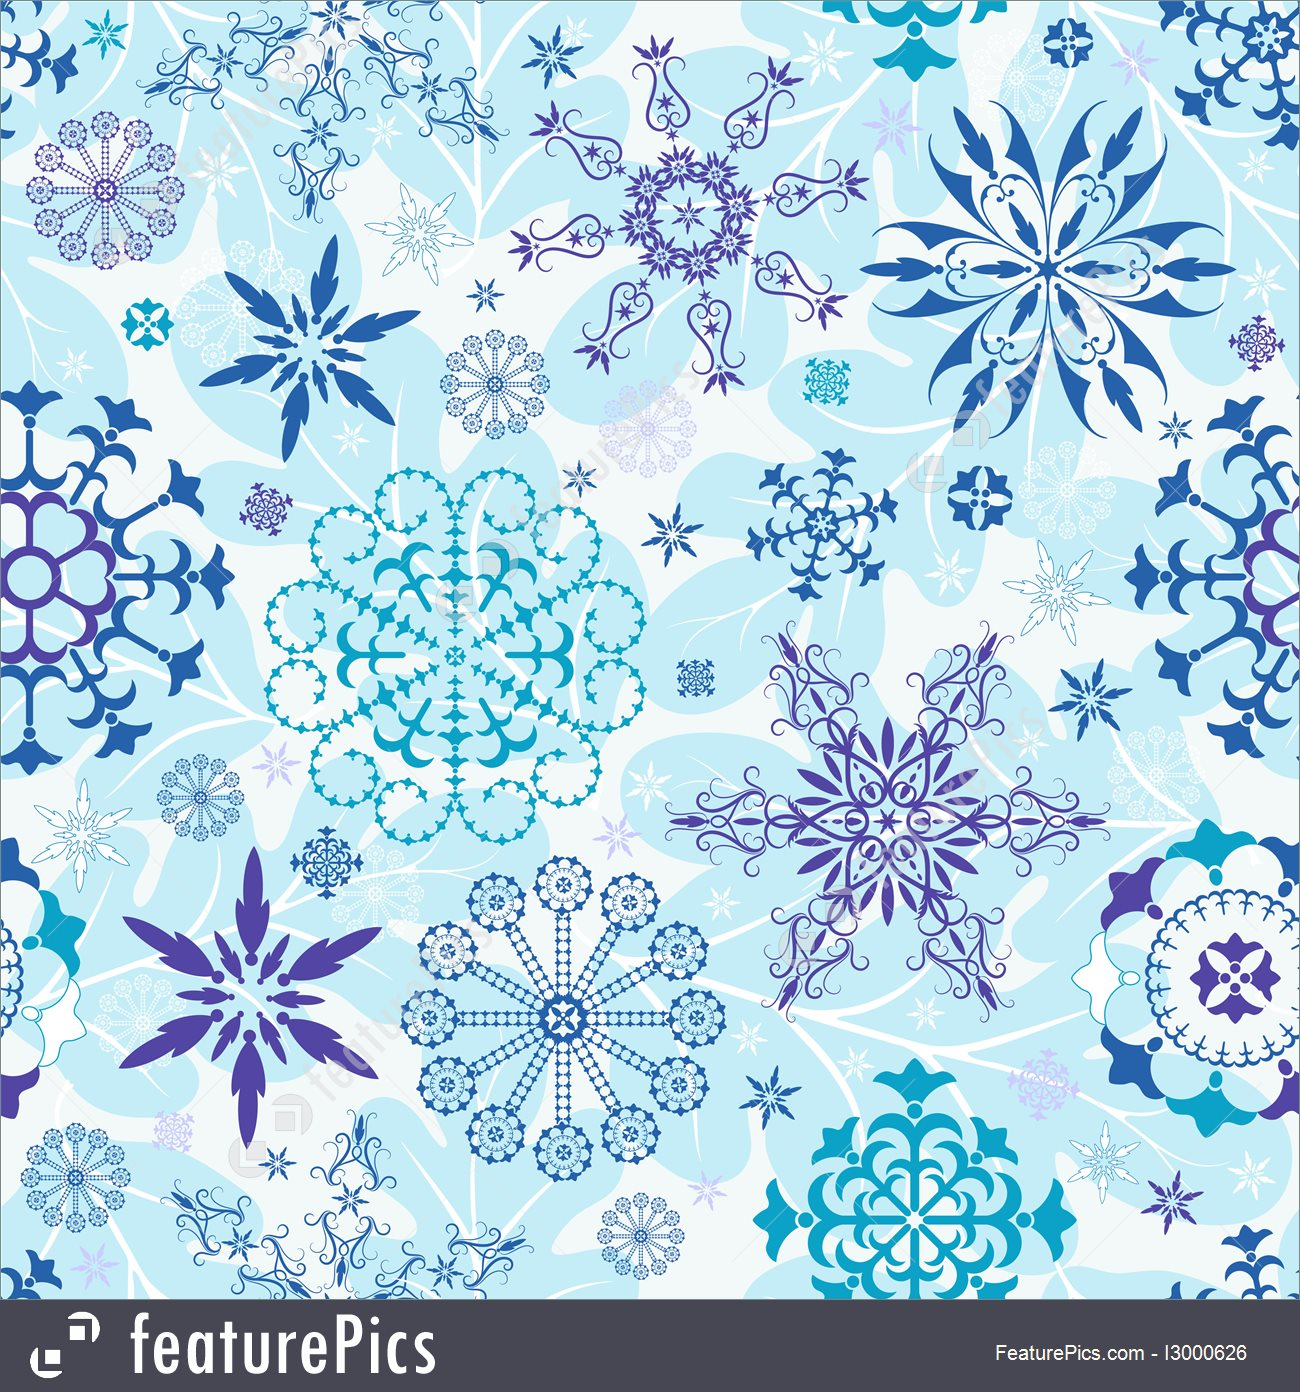 Seamless Blue And Violet And White Christmas Wallpaper.